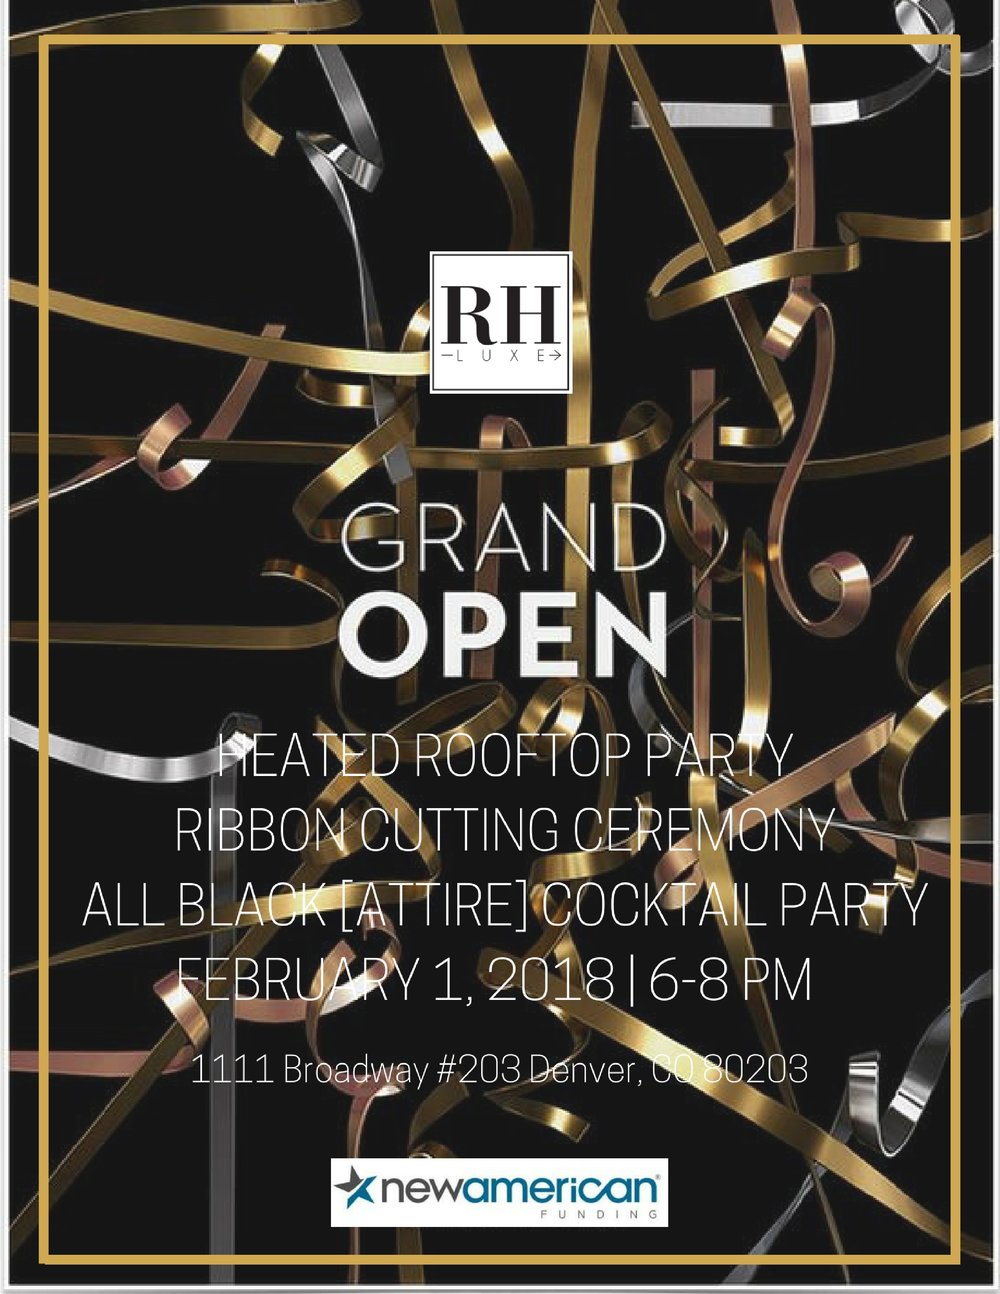 Ribbon cutting ceremony All black [attire] party The date, location time Our logo Sponsor logo And true a border. Boarders are opulent (4).jpg